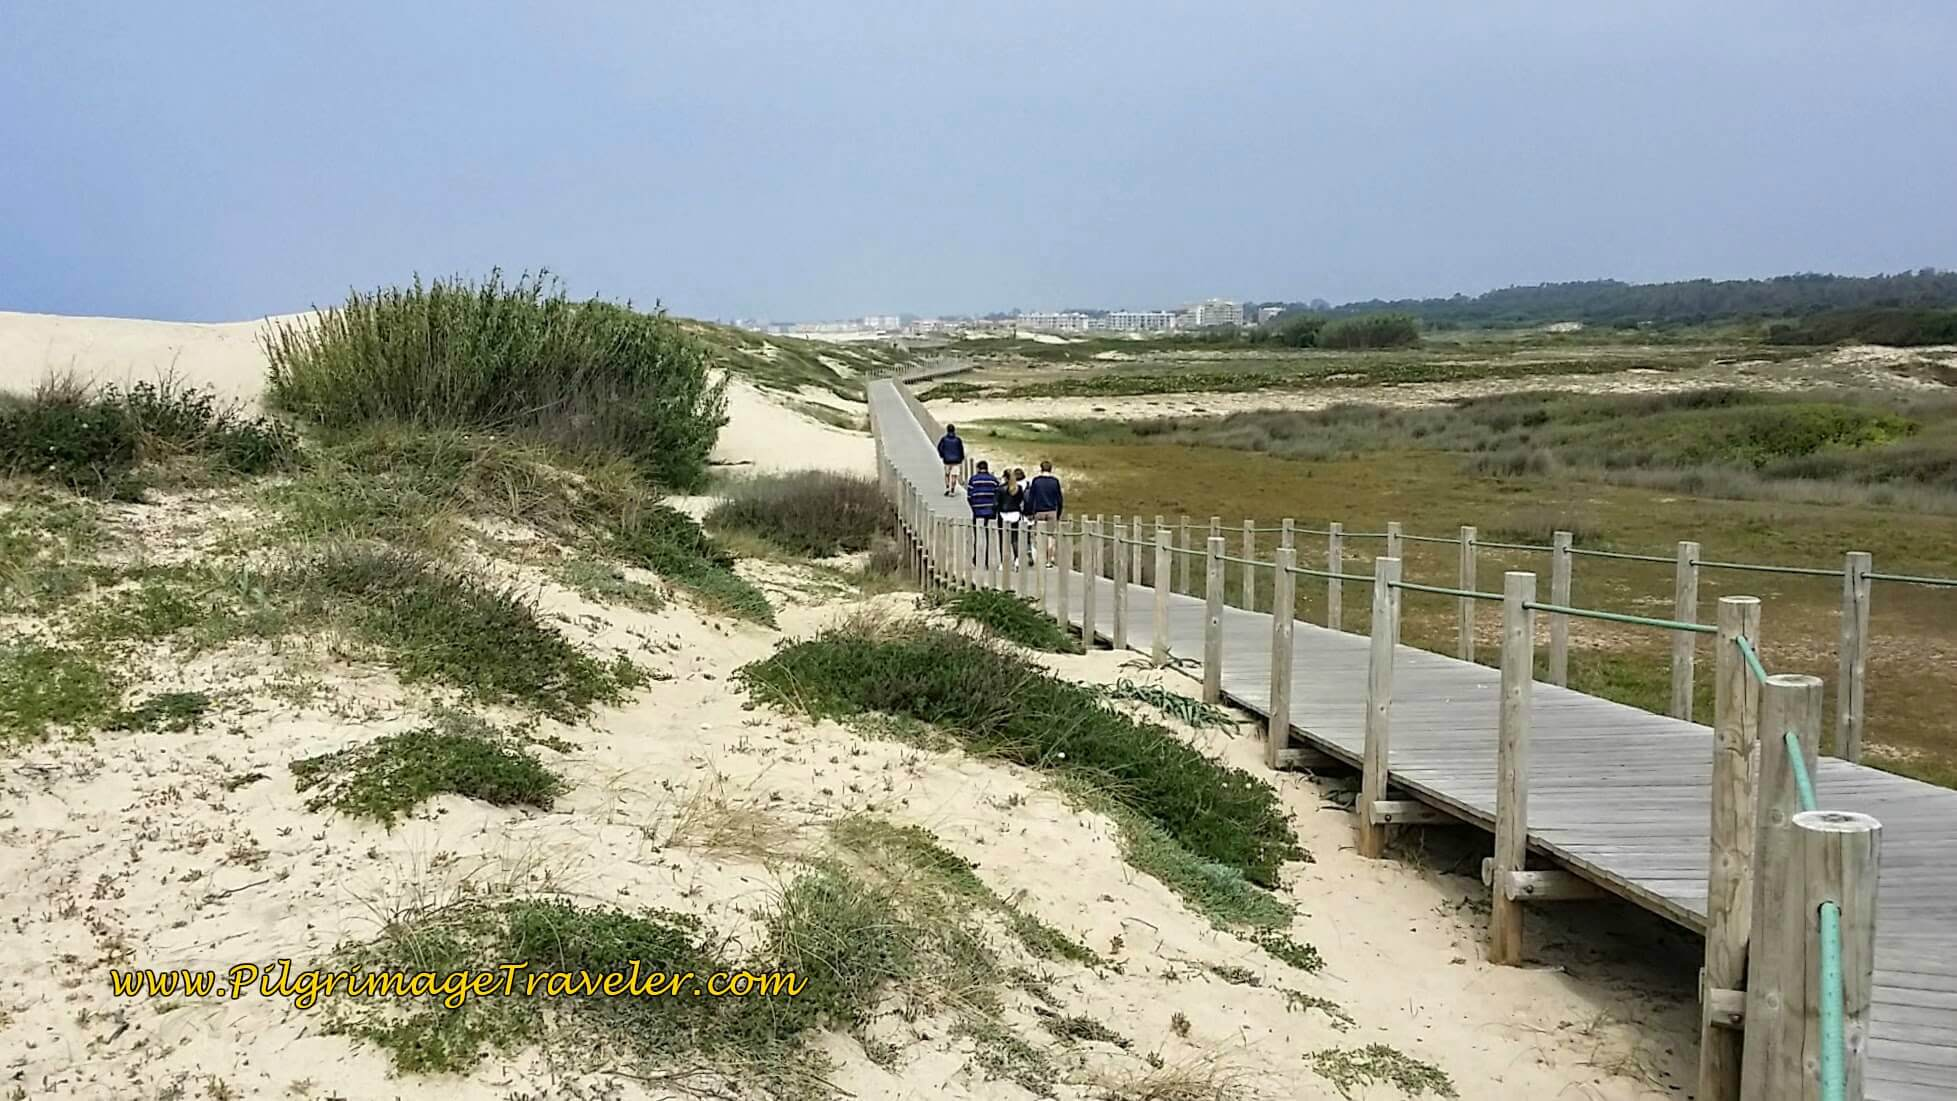 Through the Dunes of the Litoral de Vila do Conde e Reserva Ornitológica on day fifteen of the Camino Portugués on the Senda Litoral